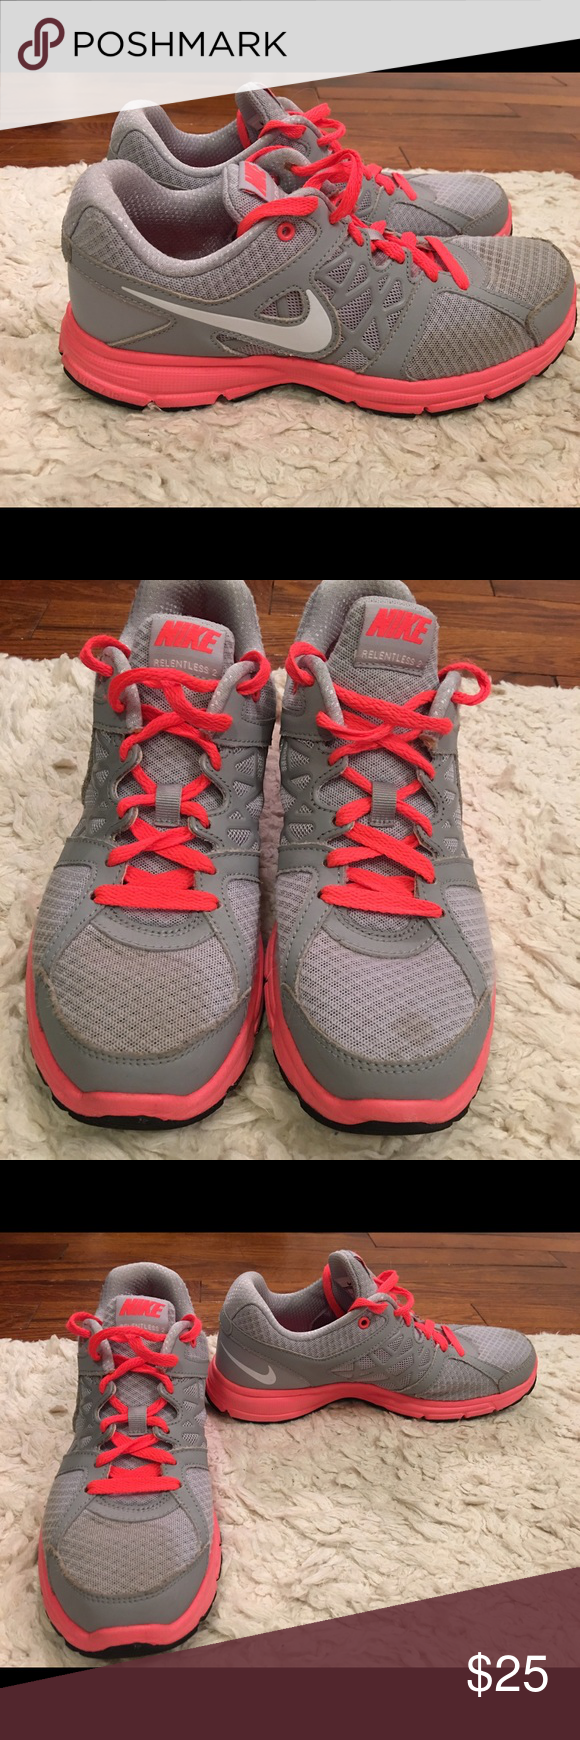 8d5796a6d7a9aa Spotted while shopping on Poshmark  Nike grey   neon coral tennis shoes!   poshmark